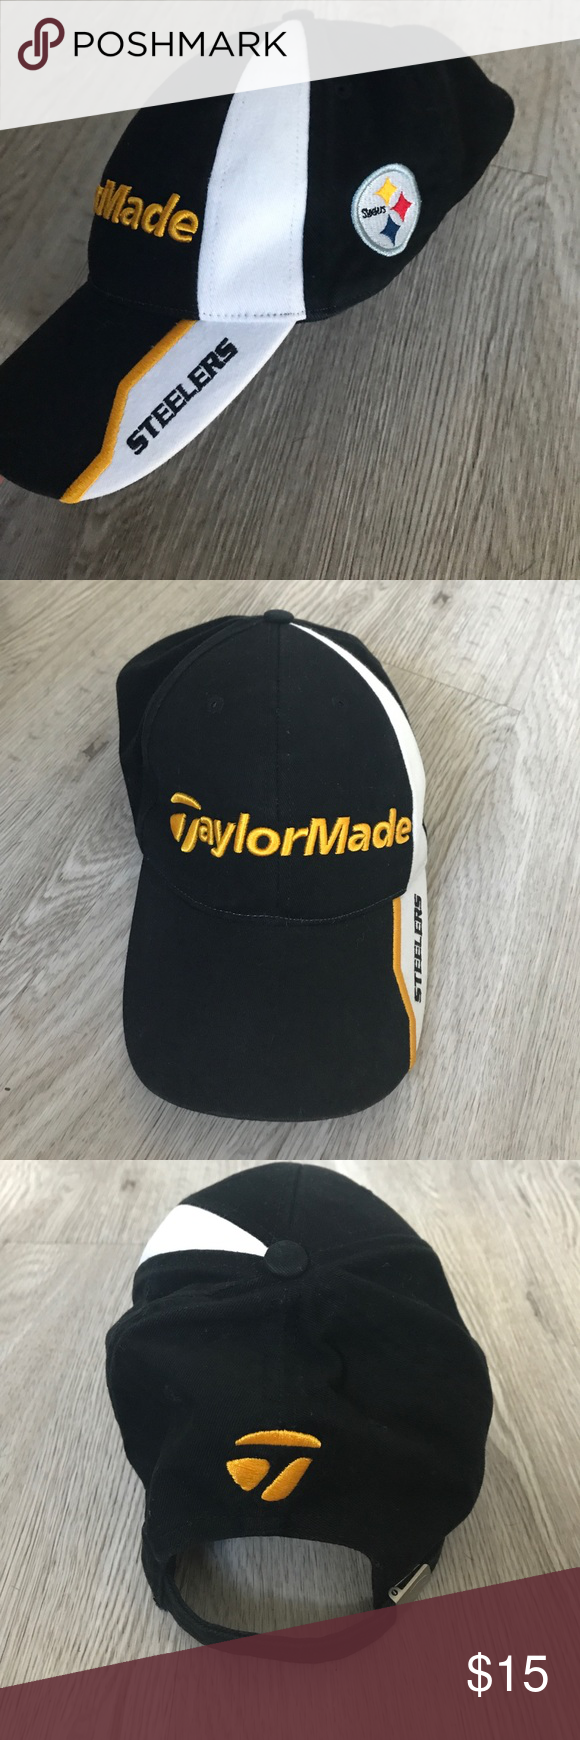 Limited Edition Taylormade Pittsburgh Steelers Hat Limited Edition  Taylormade Pittsburgh Steelers NFL Golf Hat. This d4ec1c77a